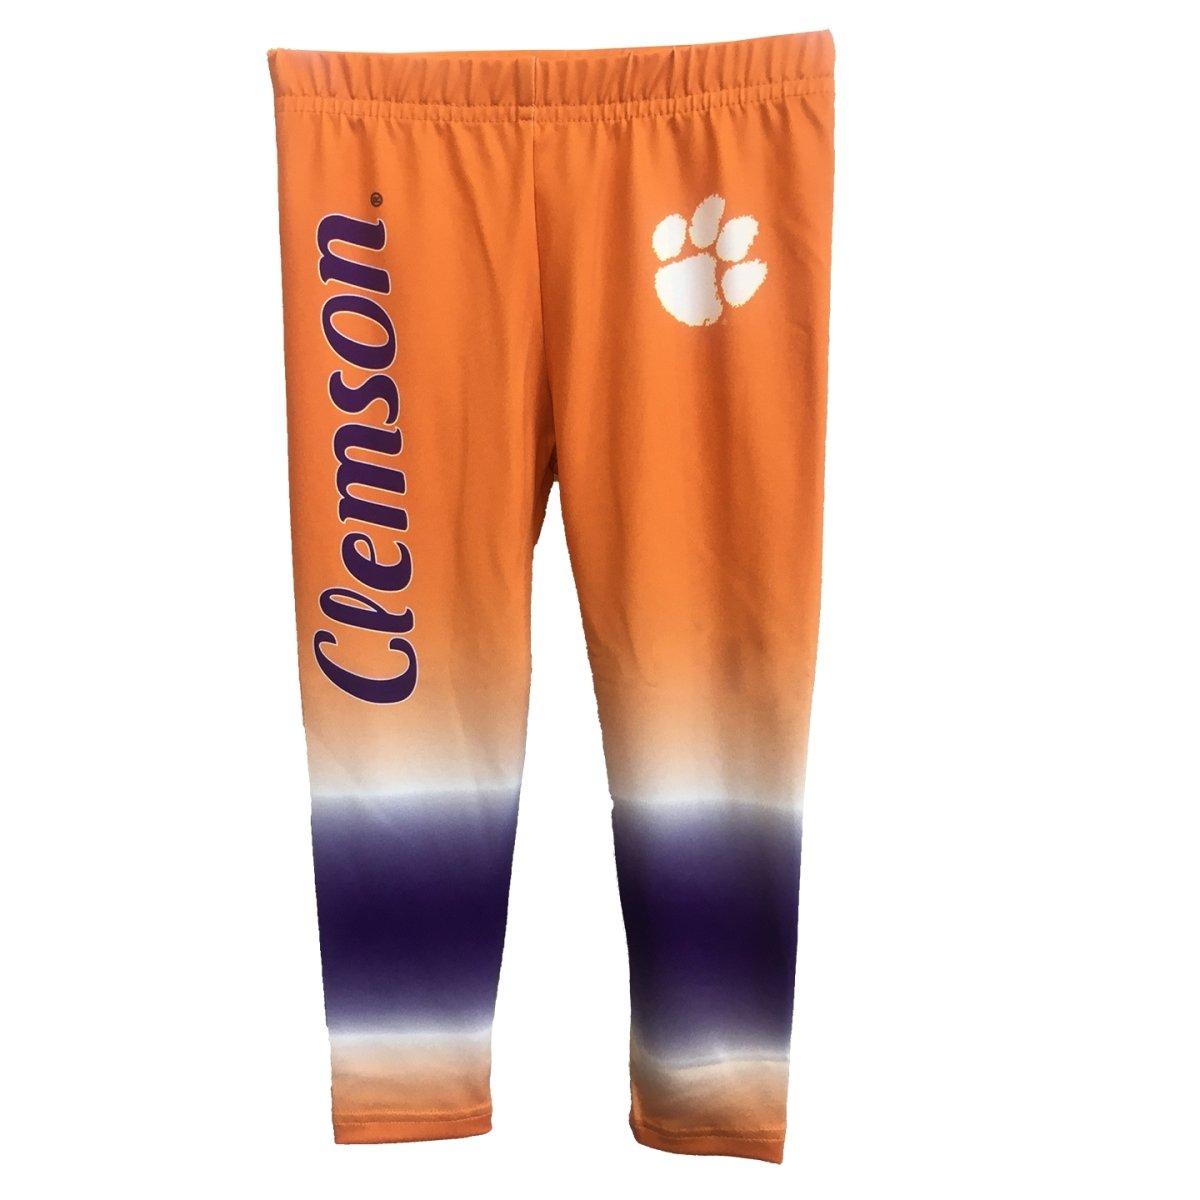 Clemson Tigers Leggings with Orange and Purple Tie Dye and white Paw - Mr. Knickerbocker